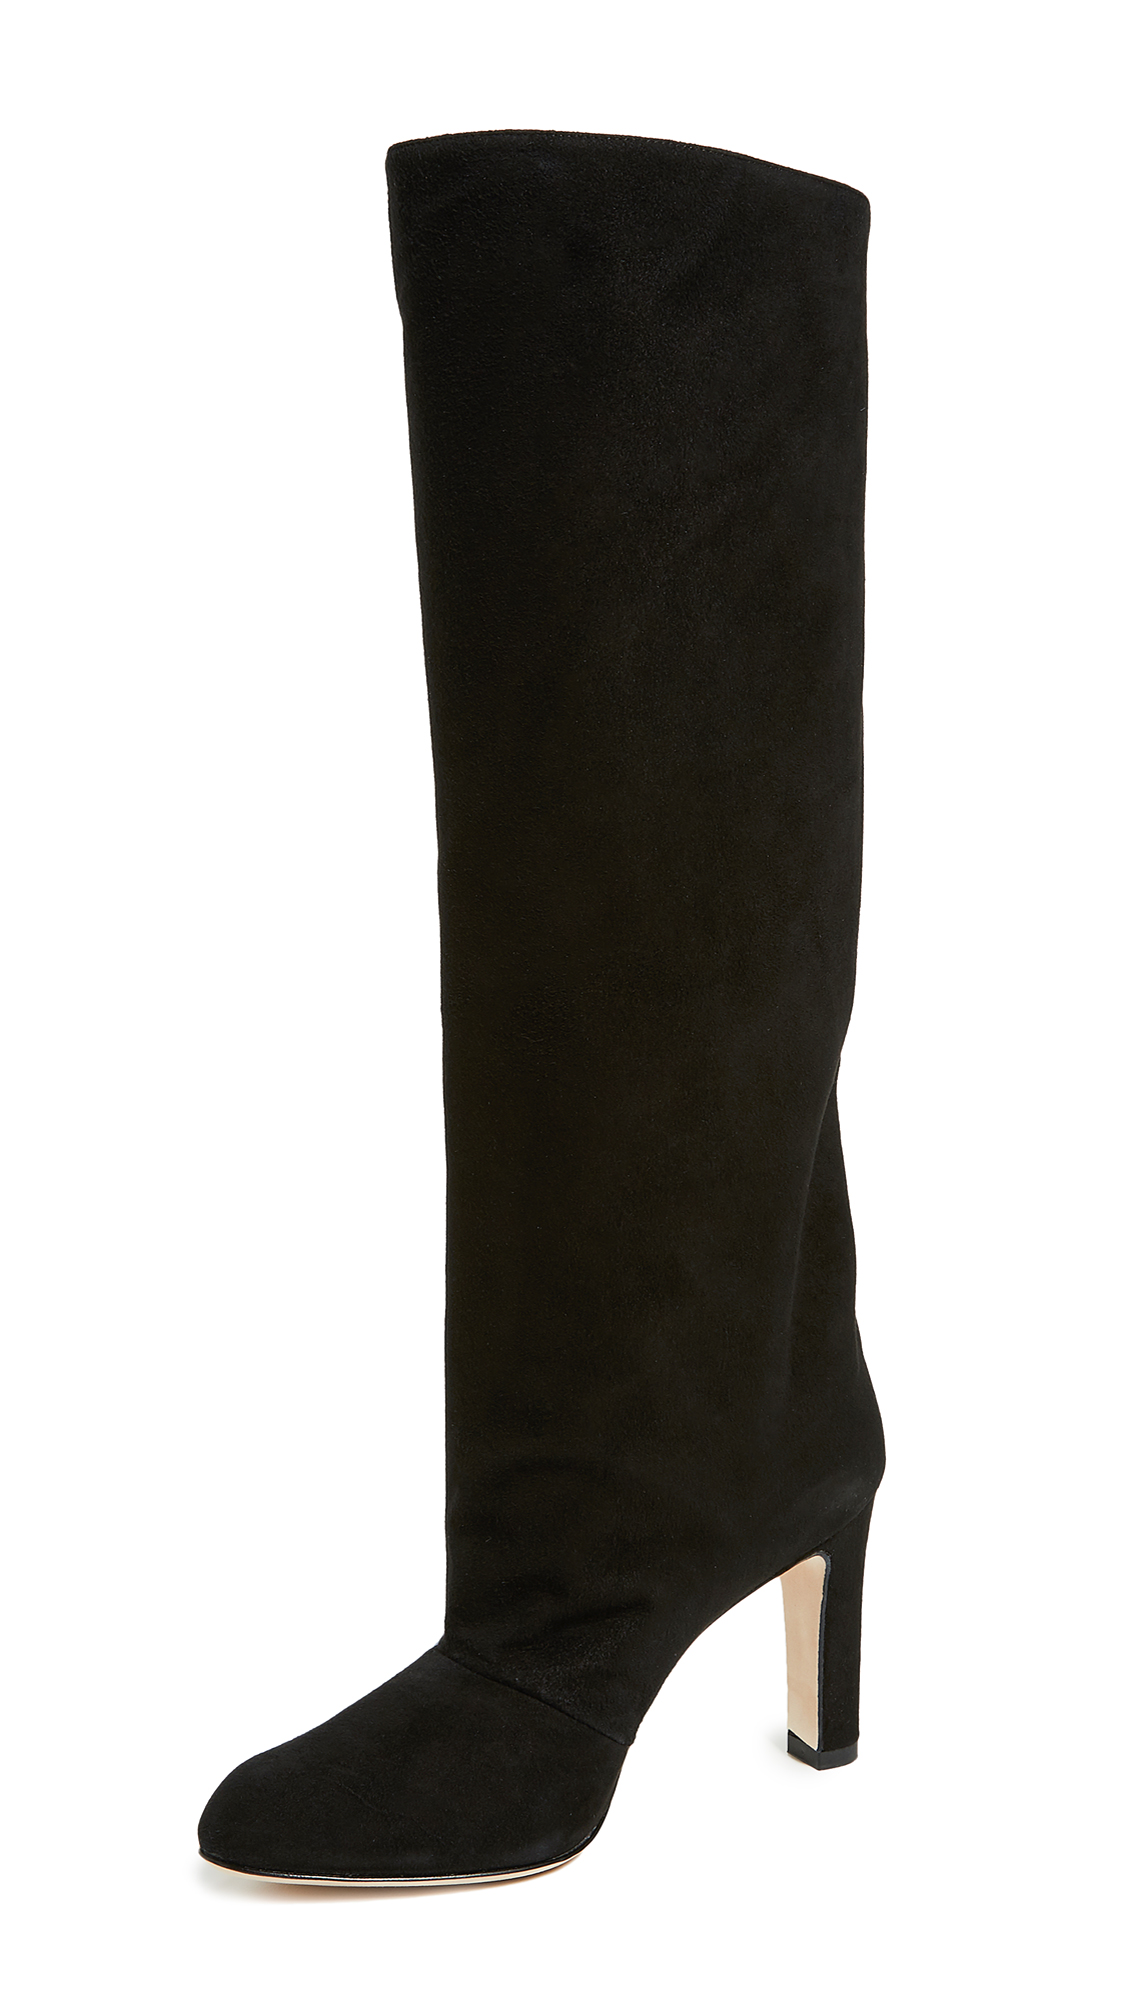 MARSKINRYYPPY Margar Tall Boots - Black